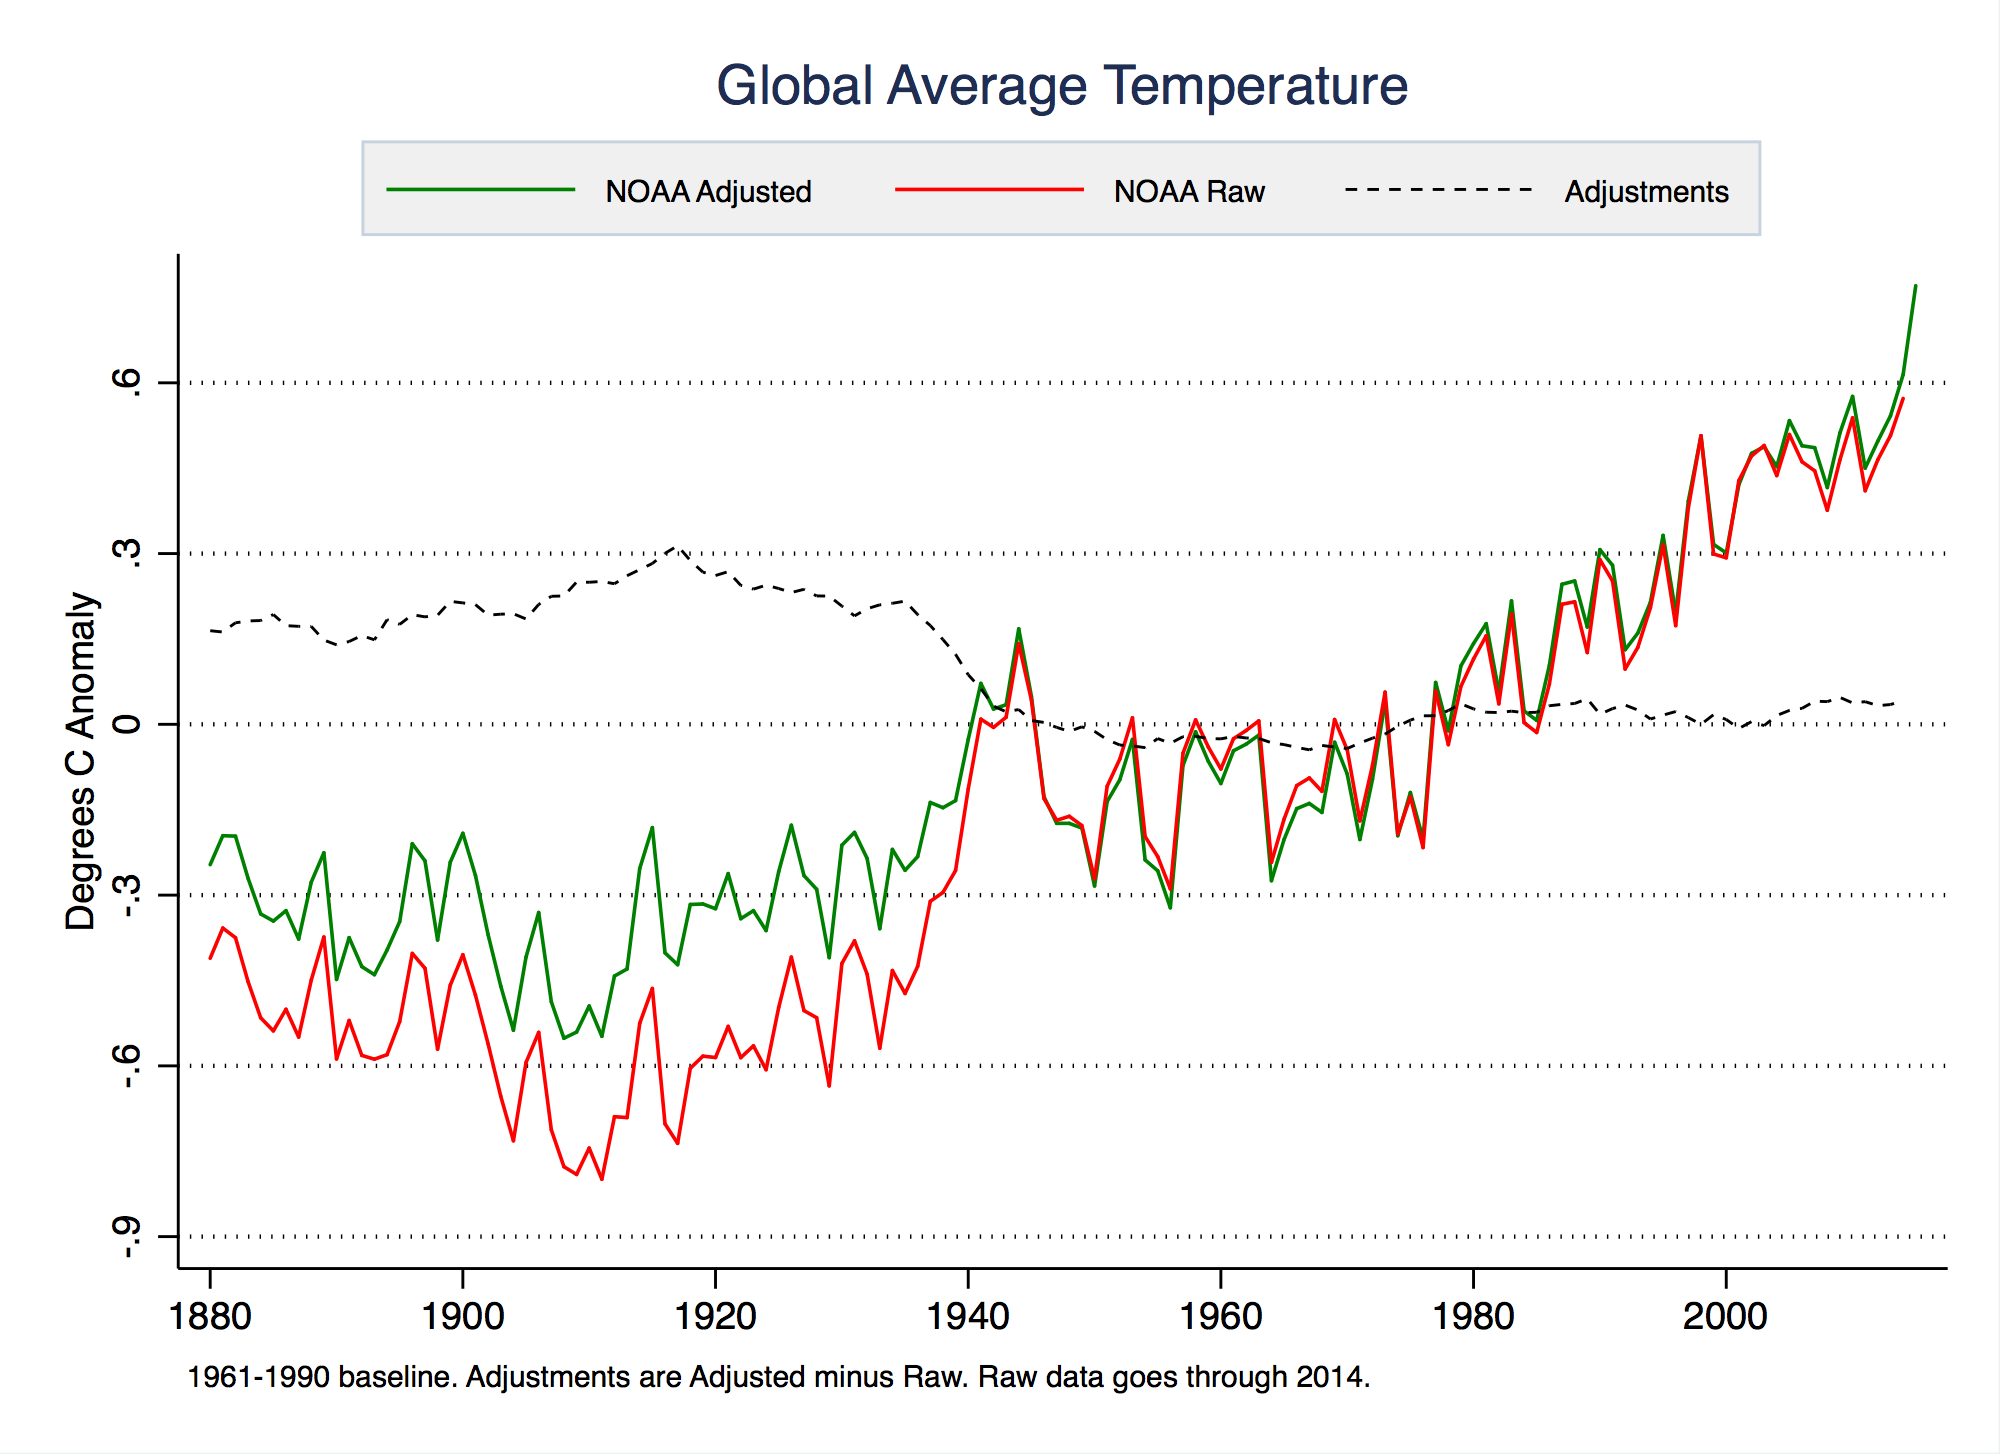 Raw and Adjusted NOAA Global Temperatures